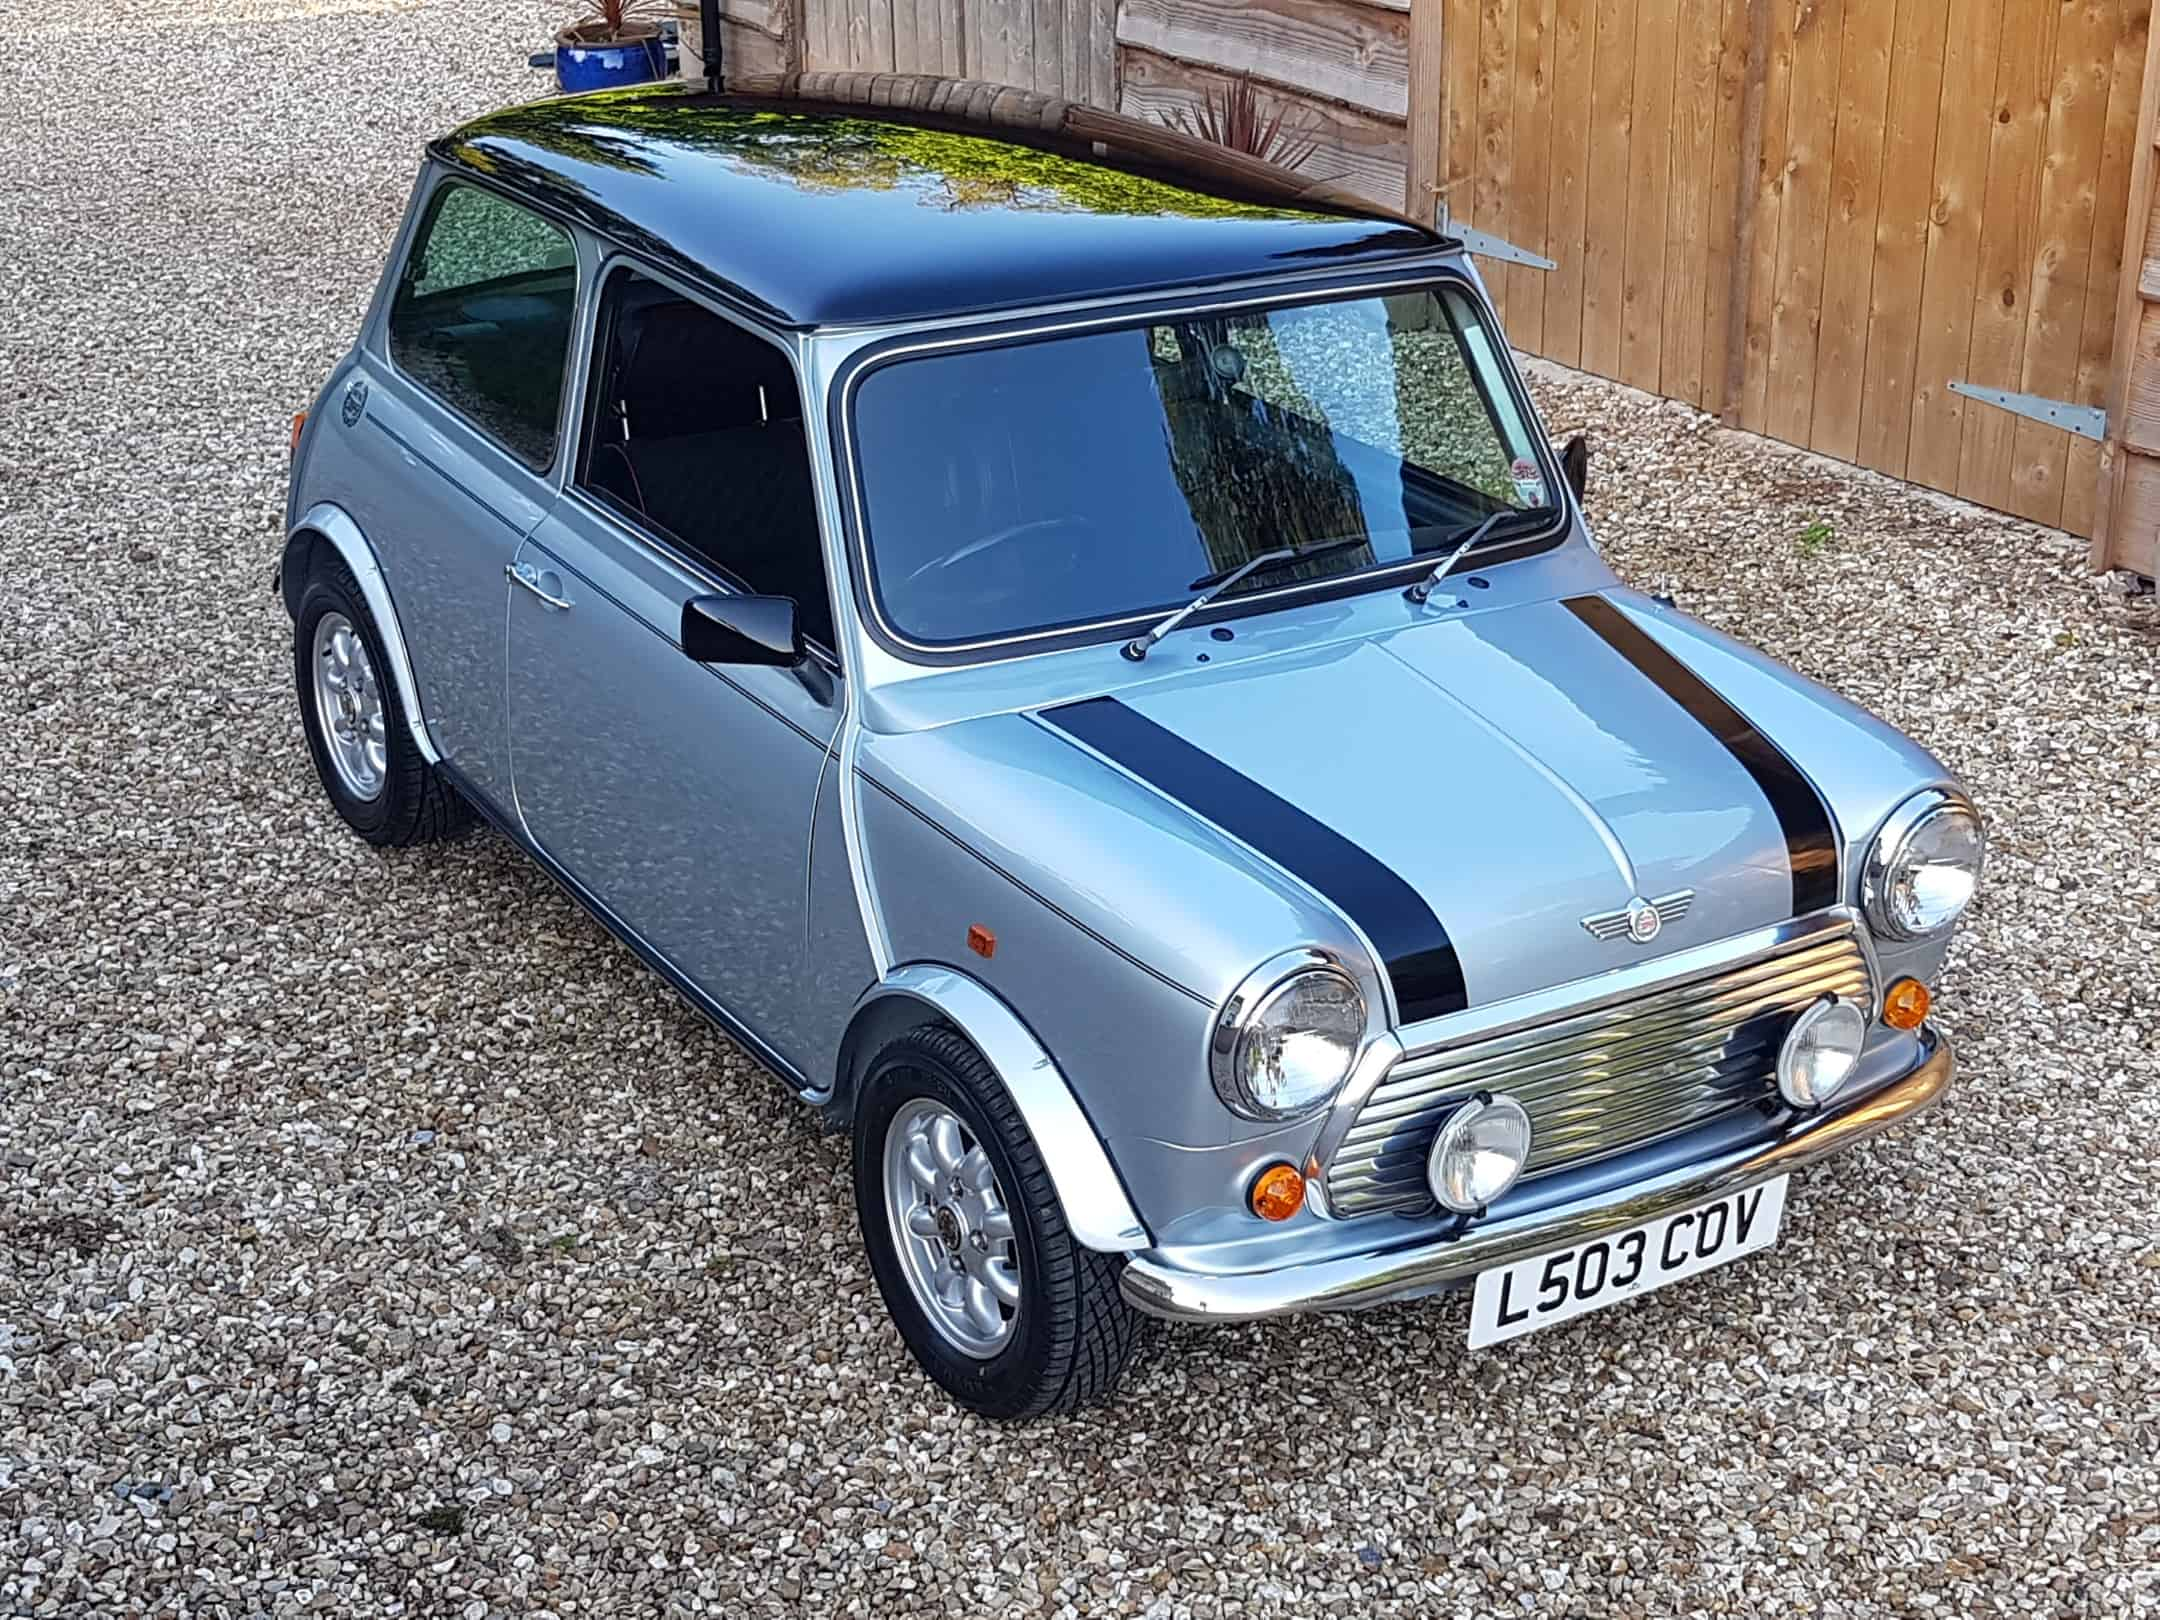 1993 Rover Mini Cooper In Rare Quicksilver On Just 14900 Miles From New!